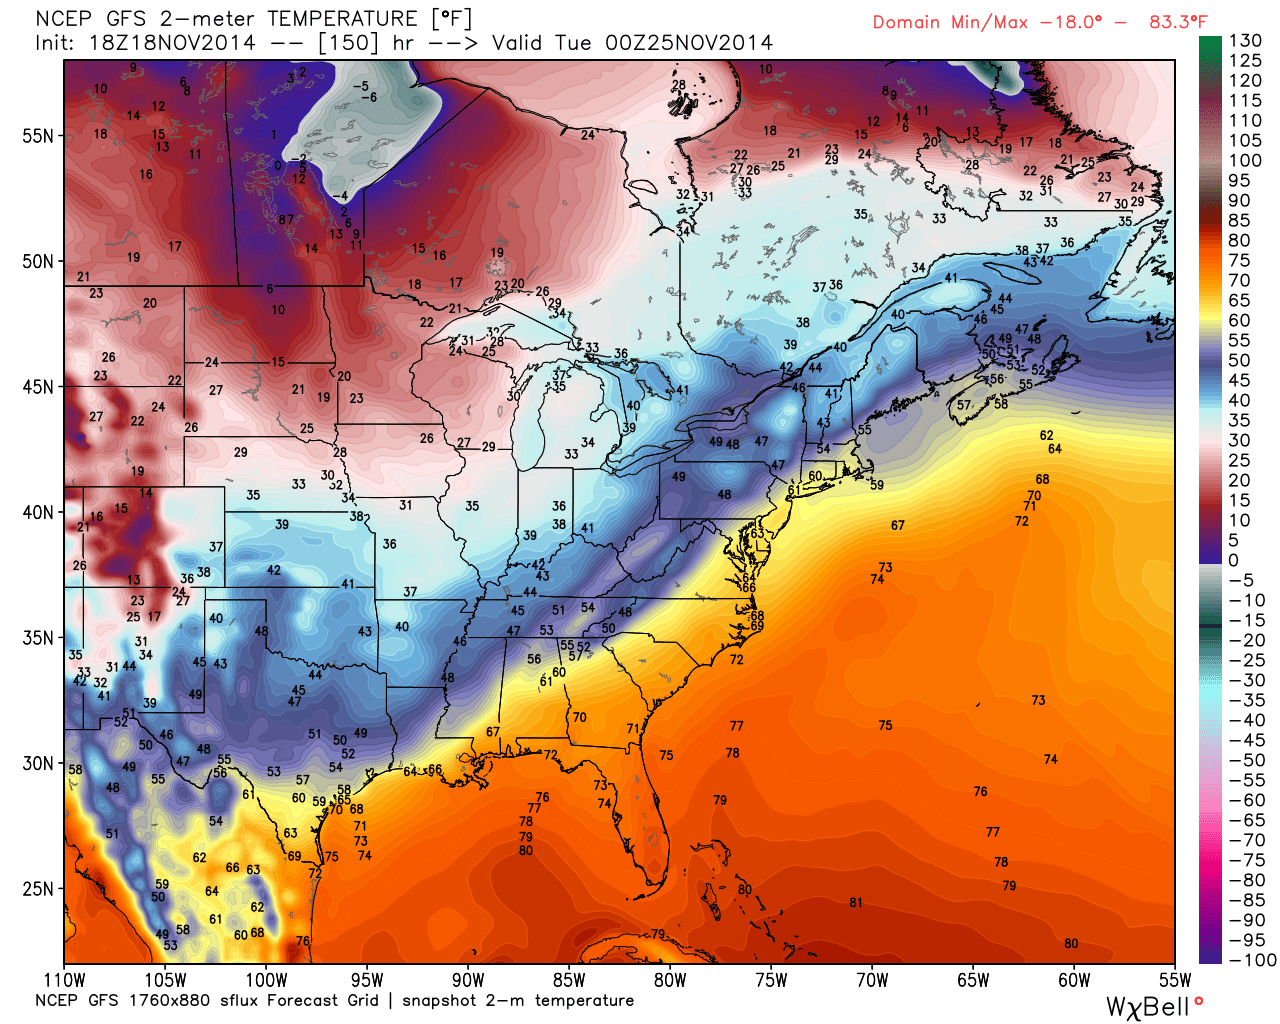 gfs temperatures